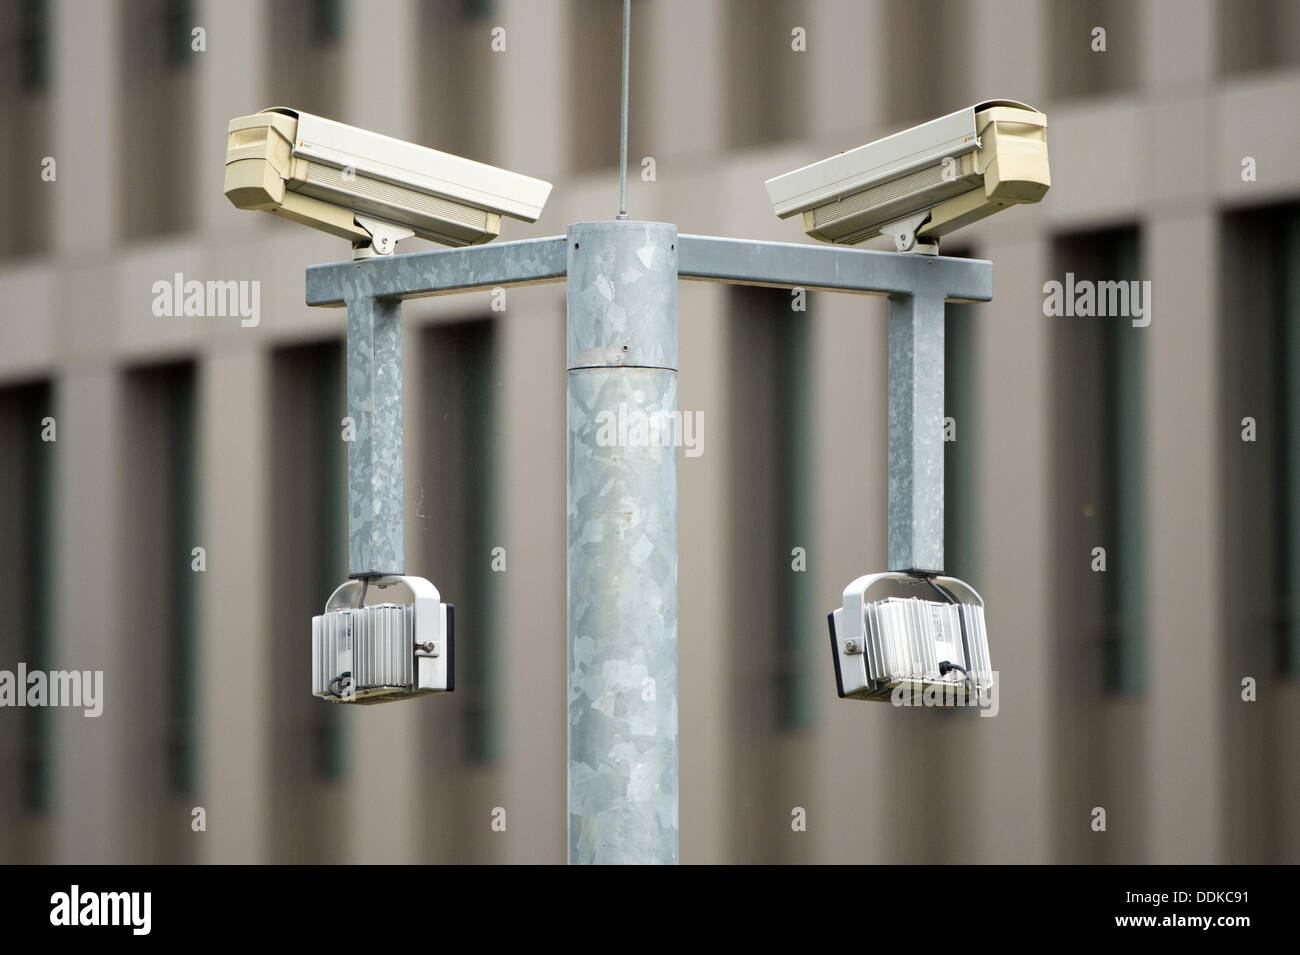 Surveillance cameras monitor the premises of the German intelligence agency in Berlin, Germany, 04 September 2013. Stock Photo